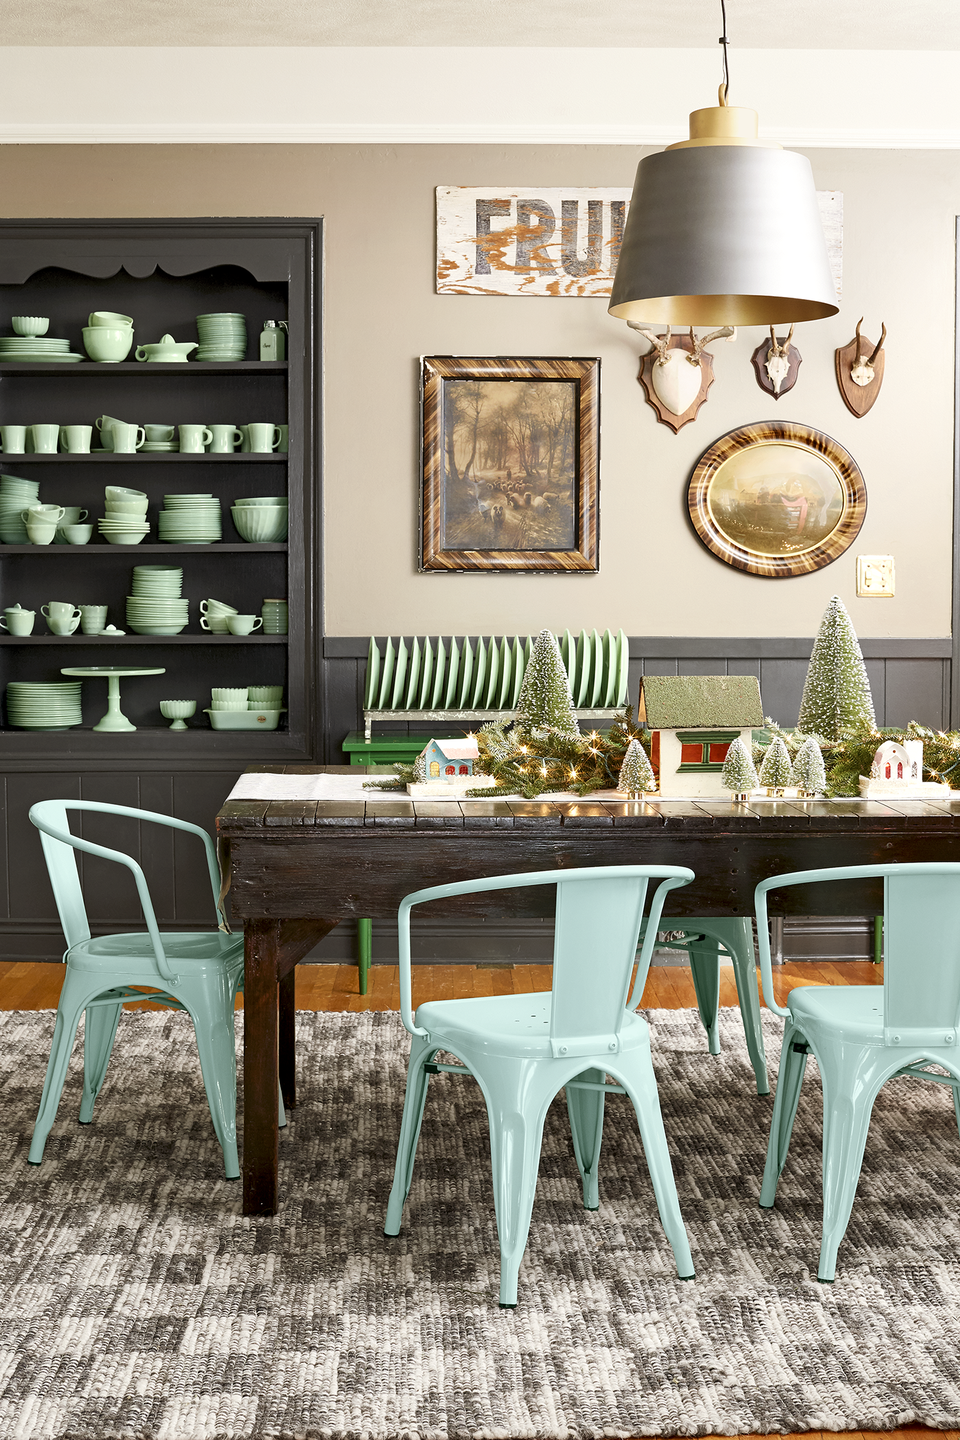 "<p>An eclectic mix of collectibles, vintage treasures, and plenty of bottle brush trees in various shades of green add color to the top of the dining table in <a href=""https://www.countryliving.com/home-design/house-tours/g4929/farmhouse-packed-christmas-decorating-ideas/"" rel=""nofollow noopener"" target=""_blank"" data-ylk=""slk:this Midwest farmhouse"" class=""link rapid-noclick-resp"">this Midwest farmhouse</a>. </p><p><a class=""link rapid-noclick-resp"" href=""https://www.amazon.com/s/ref=nb_sb_noss_2/138-0002610-0996645?url=search-alias%3Daps&field-keywords=bottle+brush+trees&tag=syn-yahoo-20&ascsubtag=%5Bartid%7C10050.g.644%5Bsrc%7Cyahoo-us"" rel=""nofollow noopener"" target=""_blank"" data-ylk=""slk:SHOP BOTTLE BRUSH TREES"">SHOP BOTTLE BRUSH TREES</a></p>"